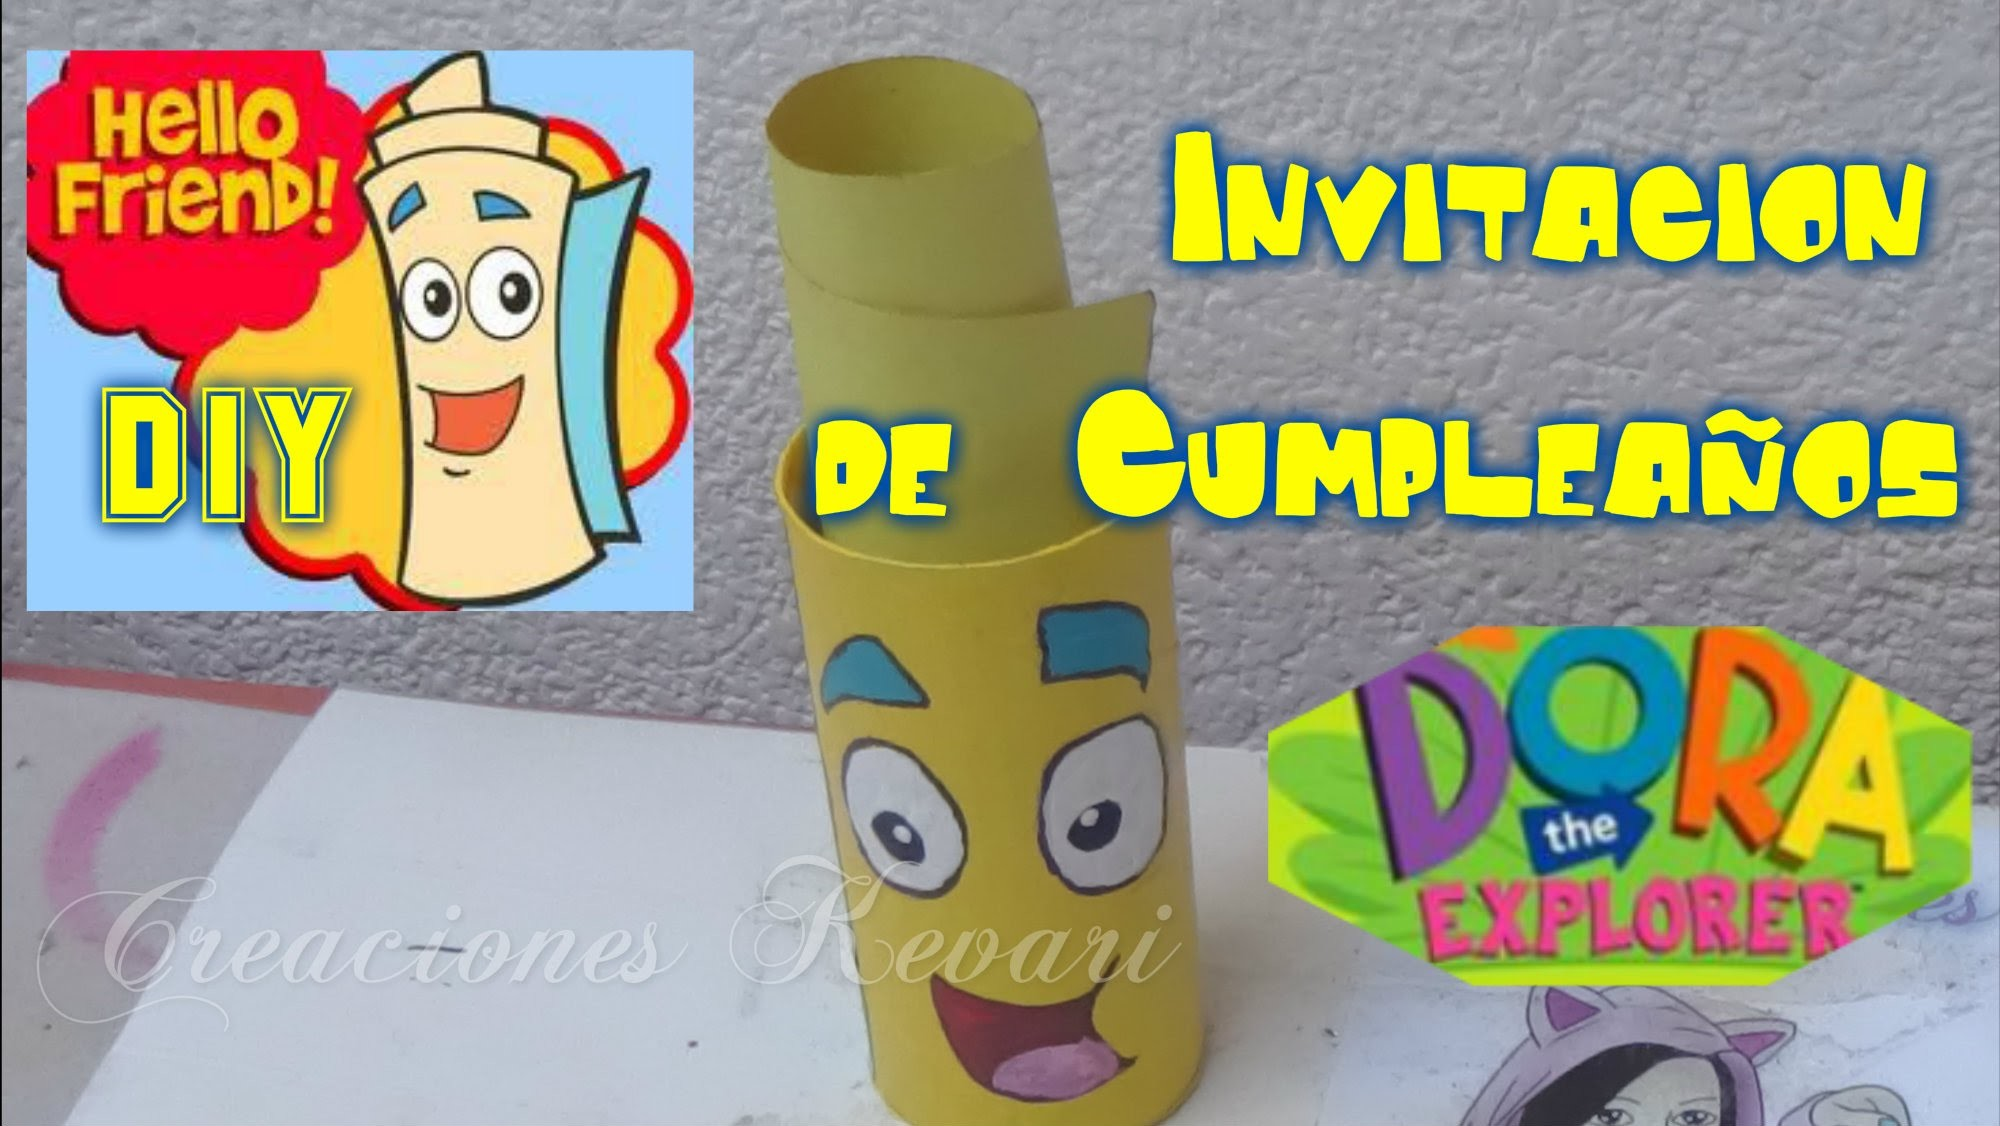 Invitacion de Cumpleaños de Mapa Dora la Exploradora.DIY Tutorial Birthday Invitations